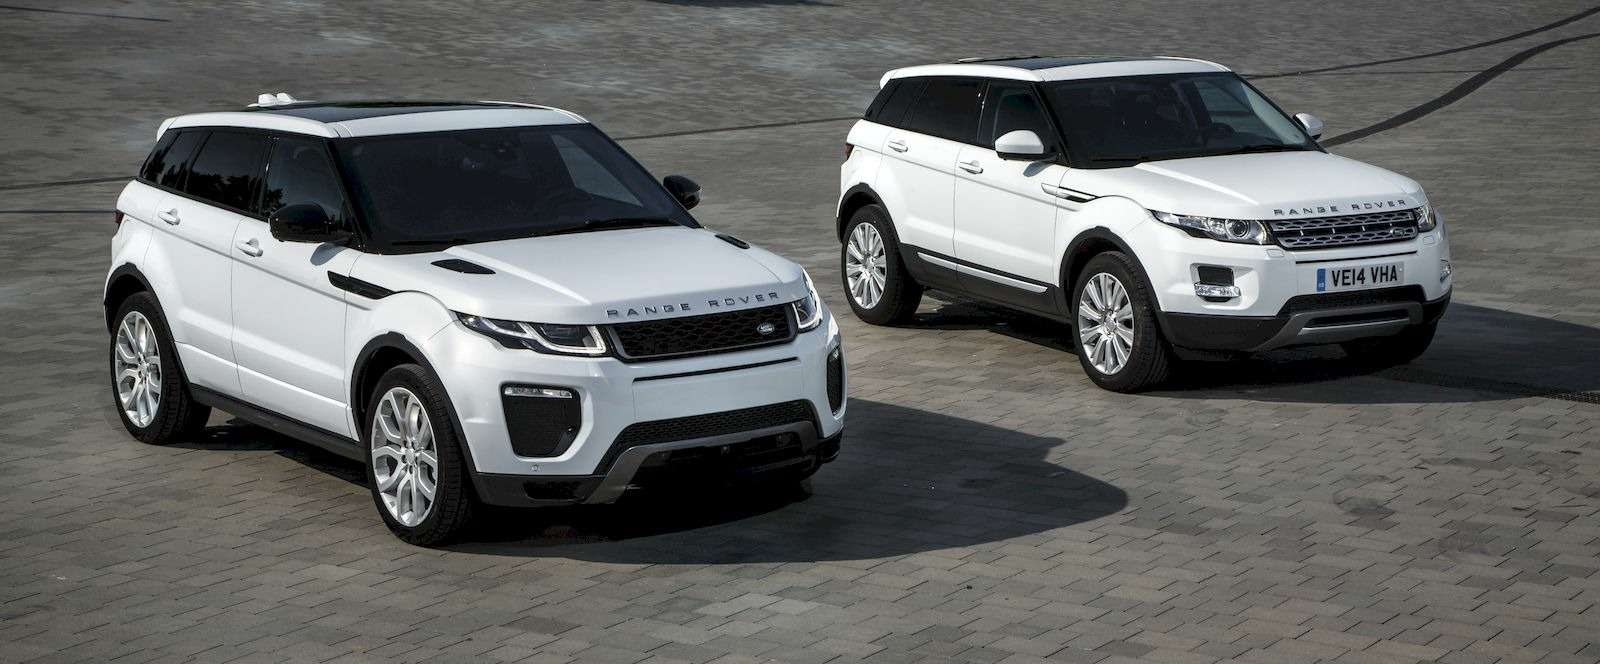 Evoque_15+16MY_001_result